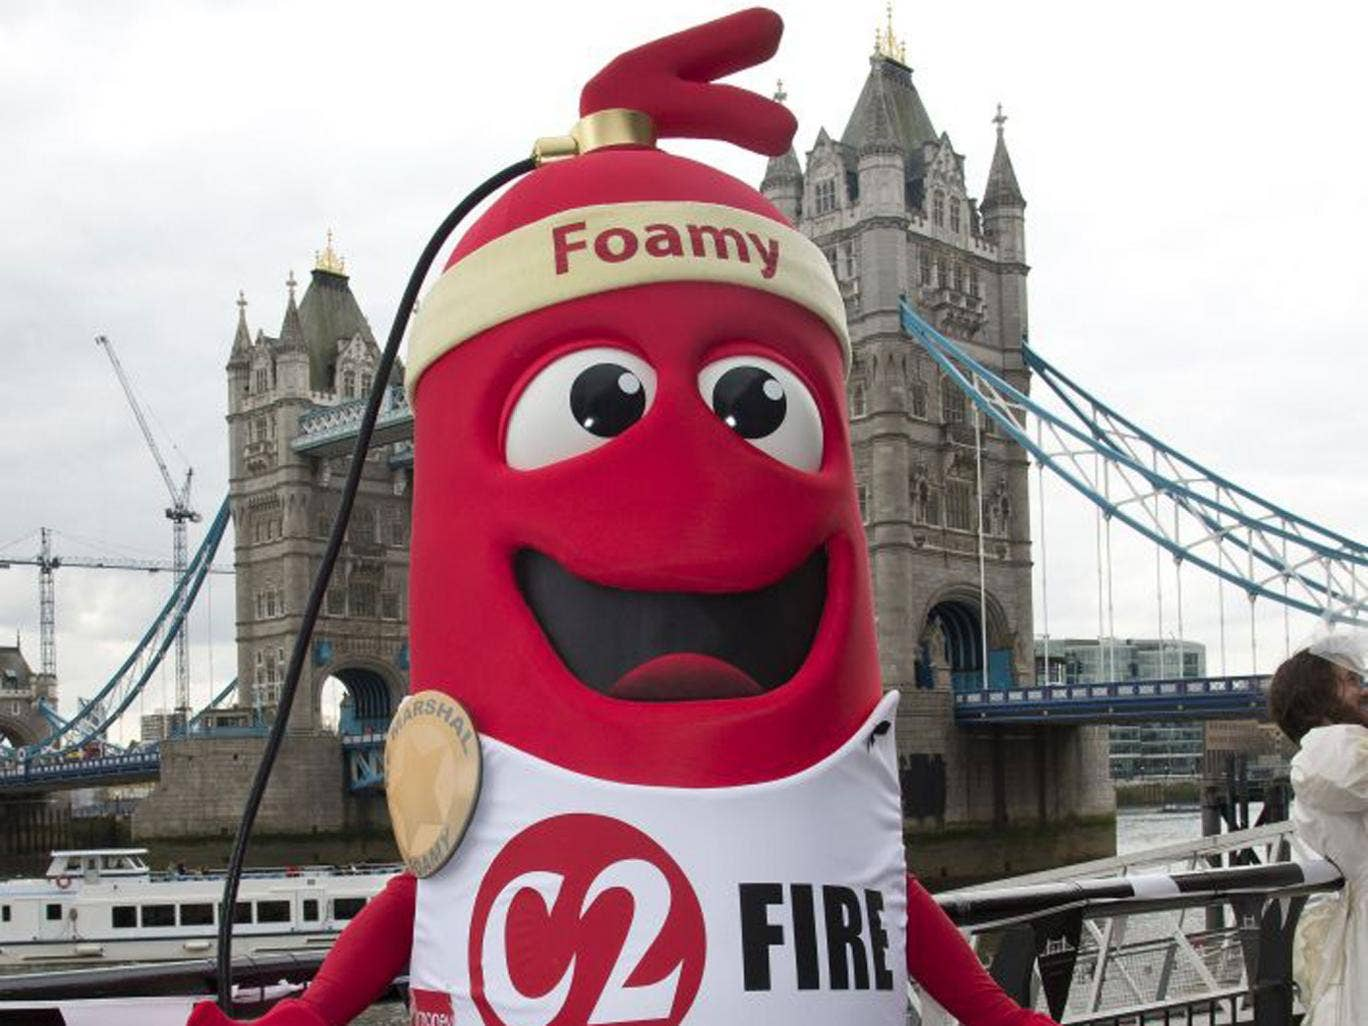 Among them will be 60 runners attempting to set an array of Guinness World Records – including Jerome Timbrell who hopes to complete the fastest marathon as a mascot while  dressed as a fire extinguisher